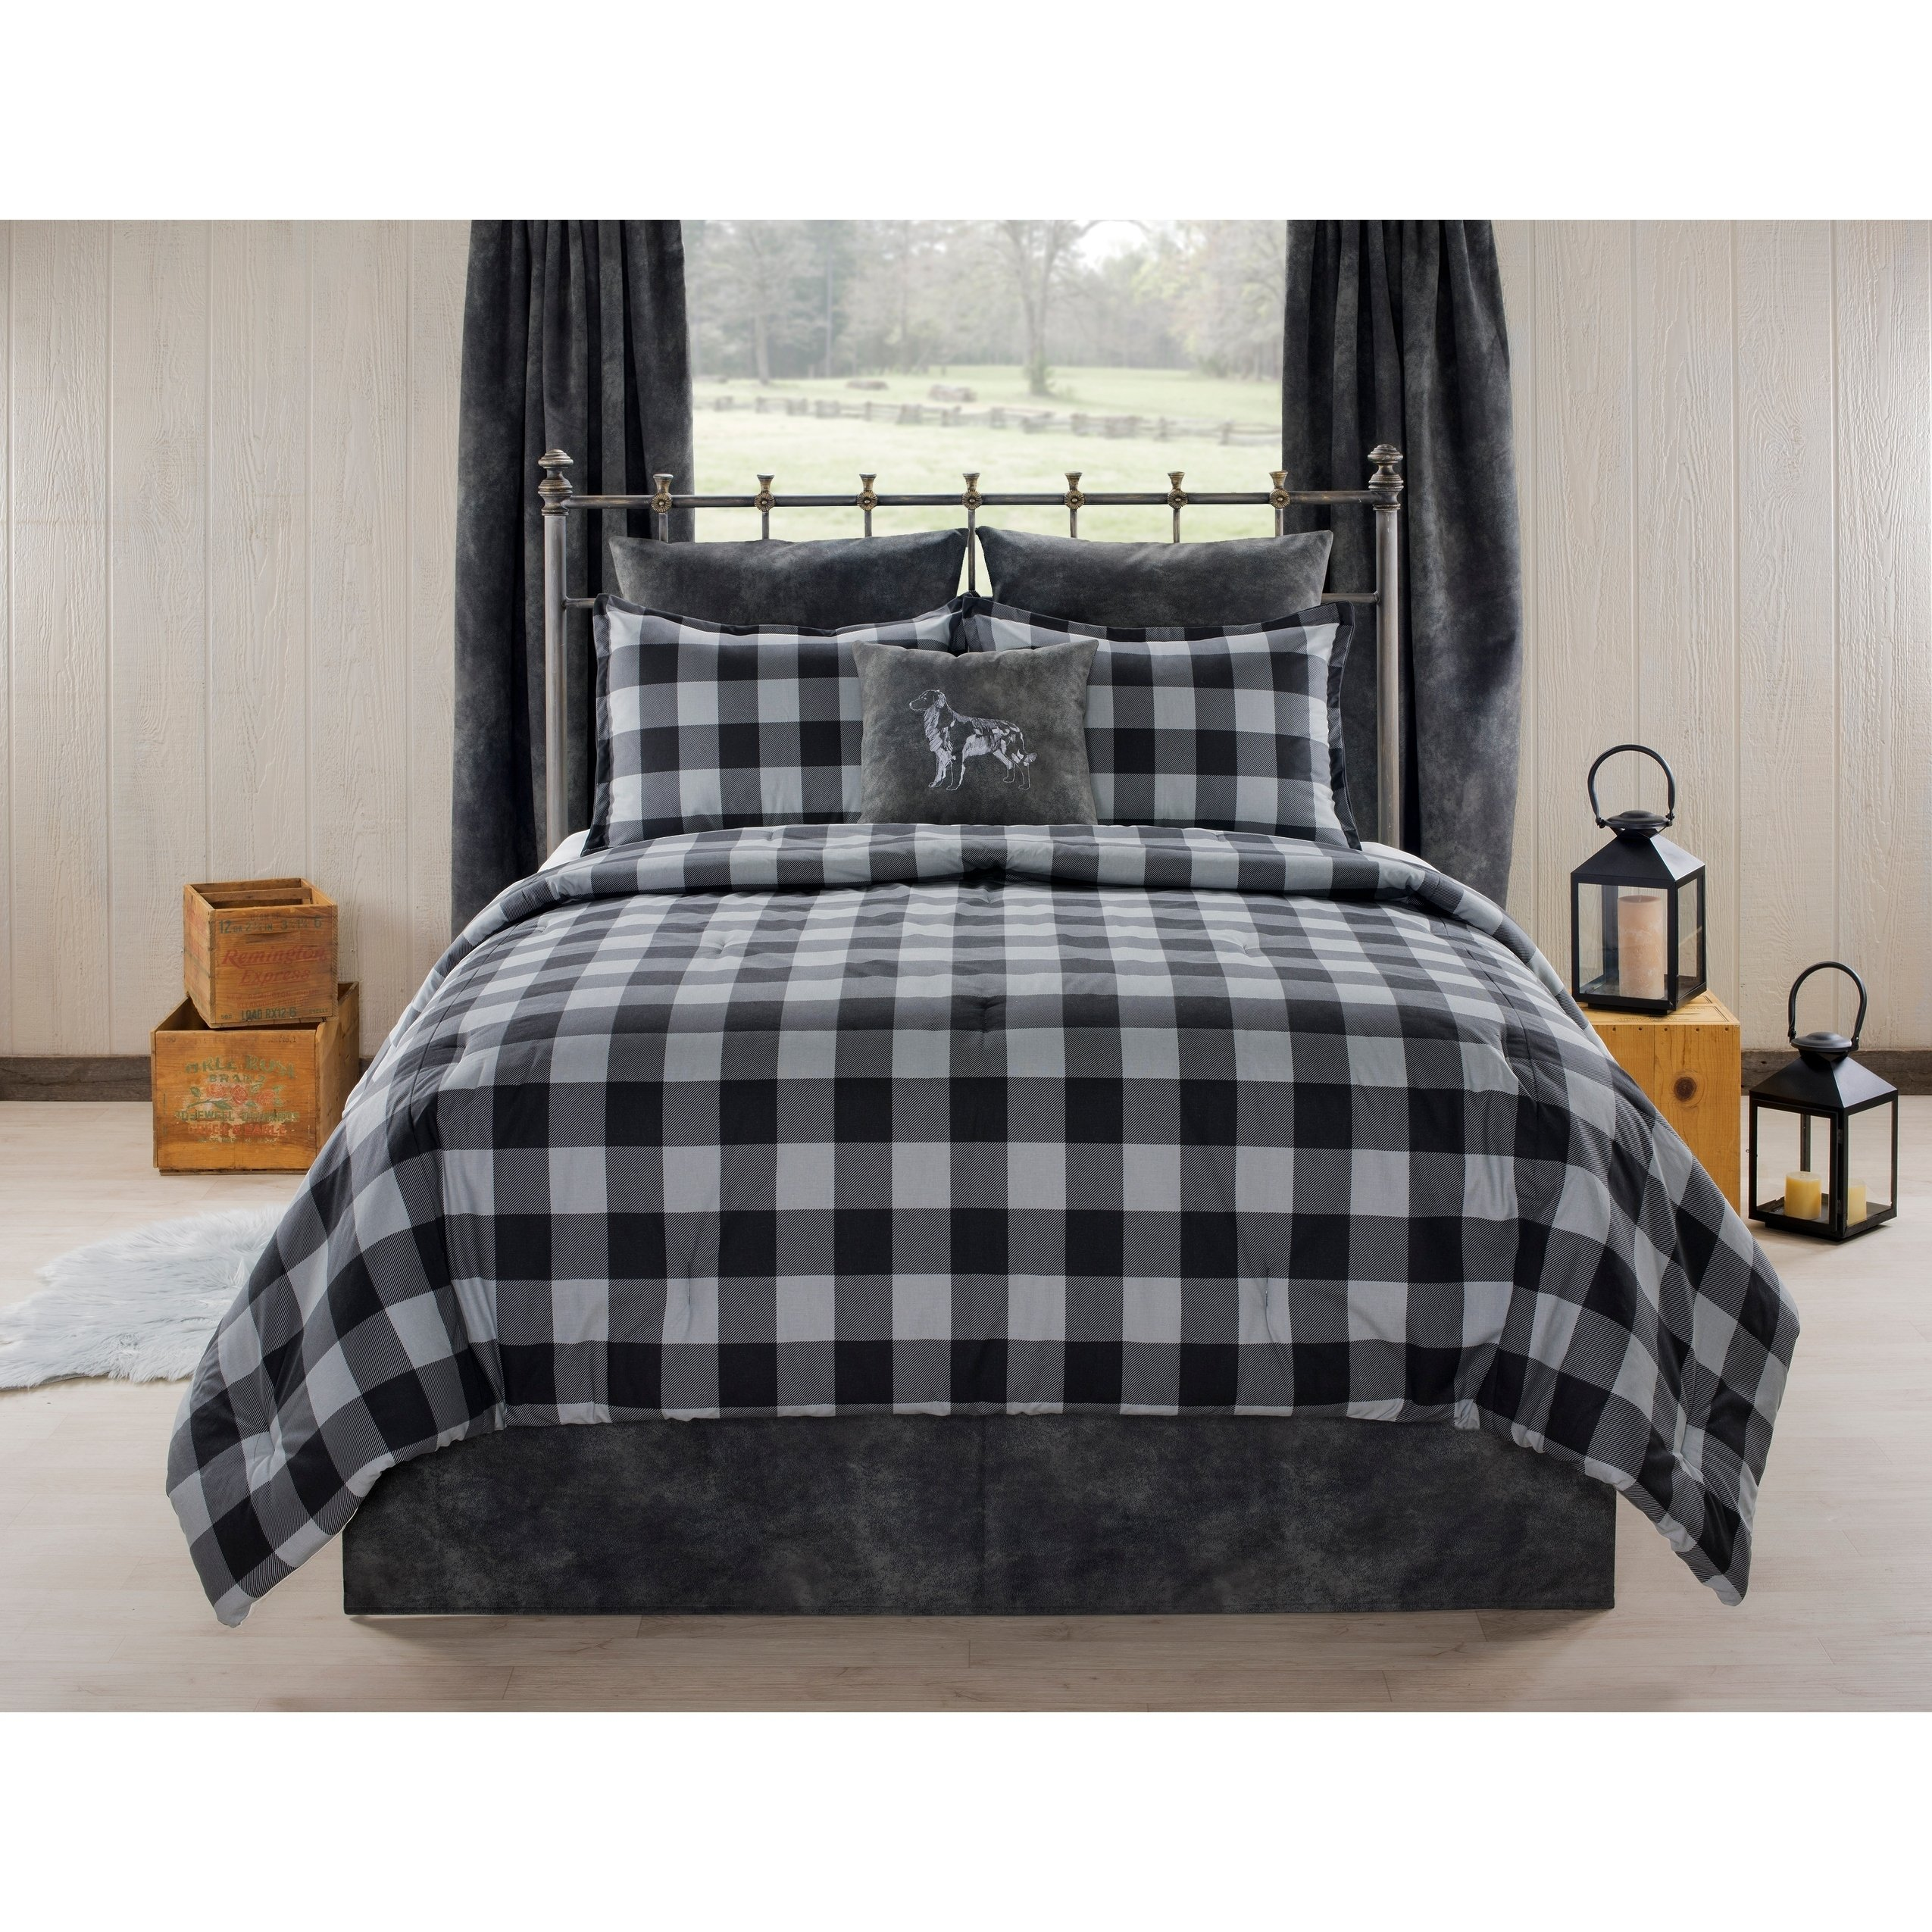 Aspen Cabin And Lodge Gray Plaid Comforter Set Queen 4 Piece